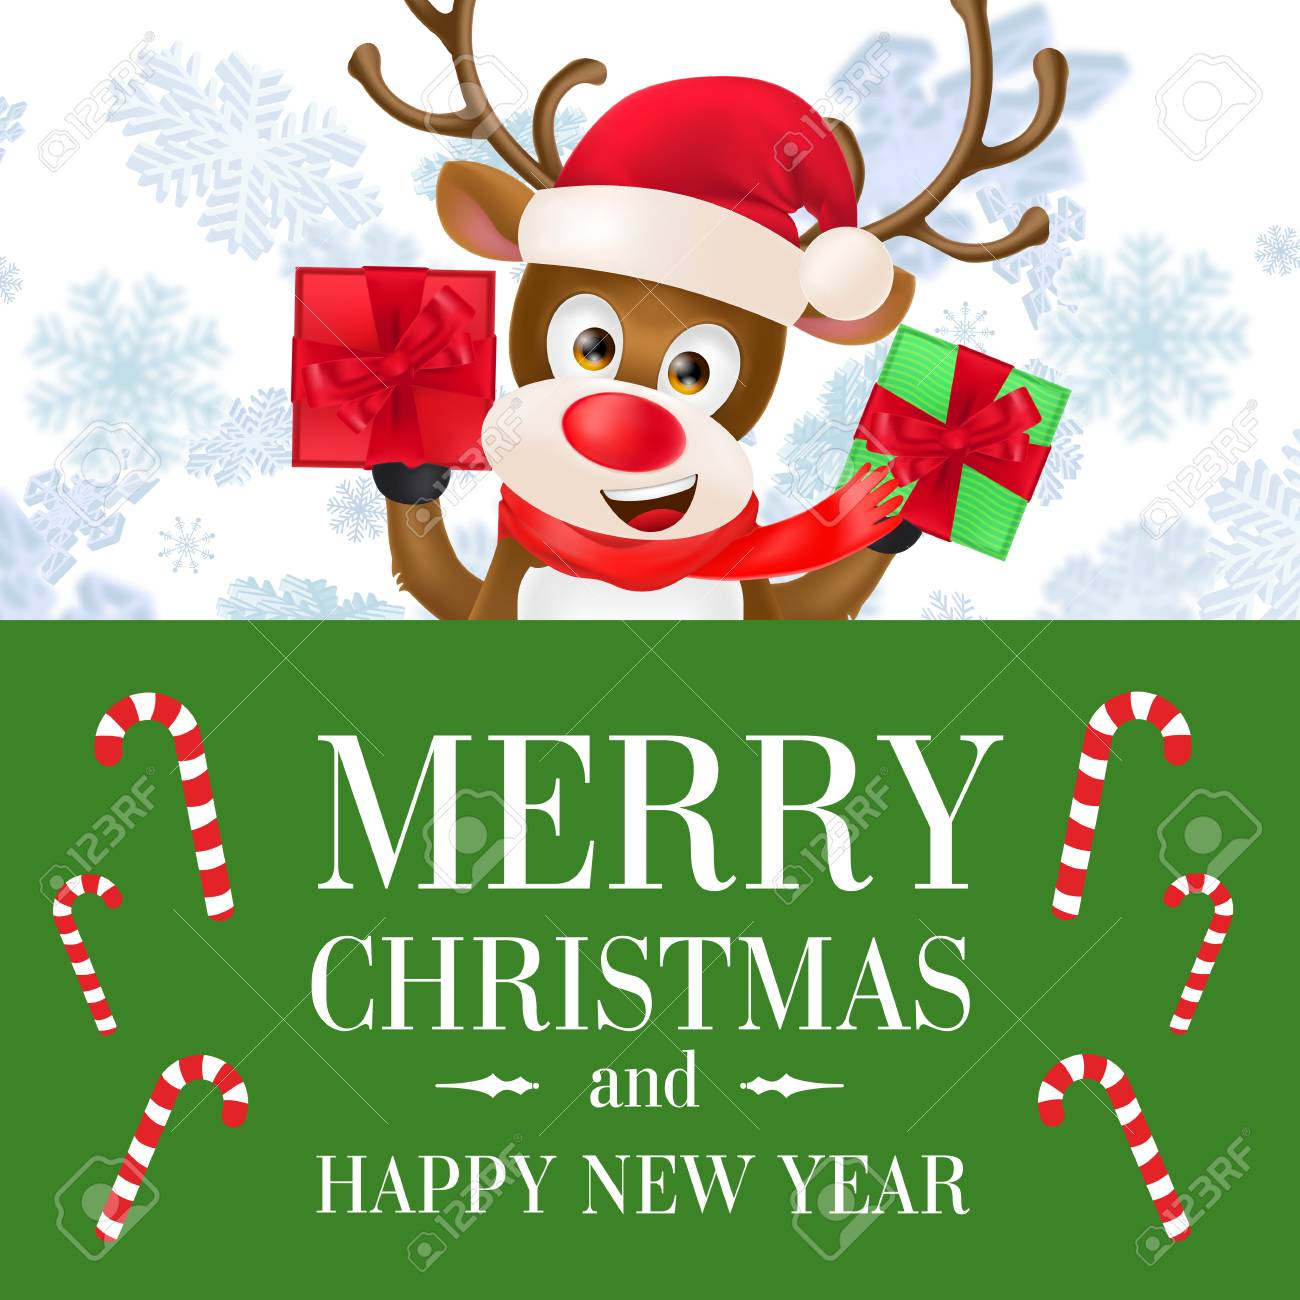 merry christmas and happy new year banner template green poster with candy canes and reindeer